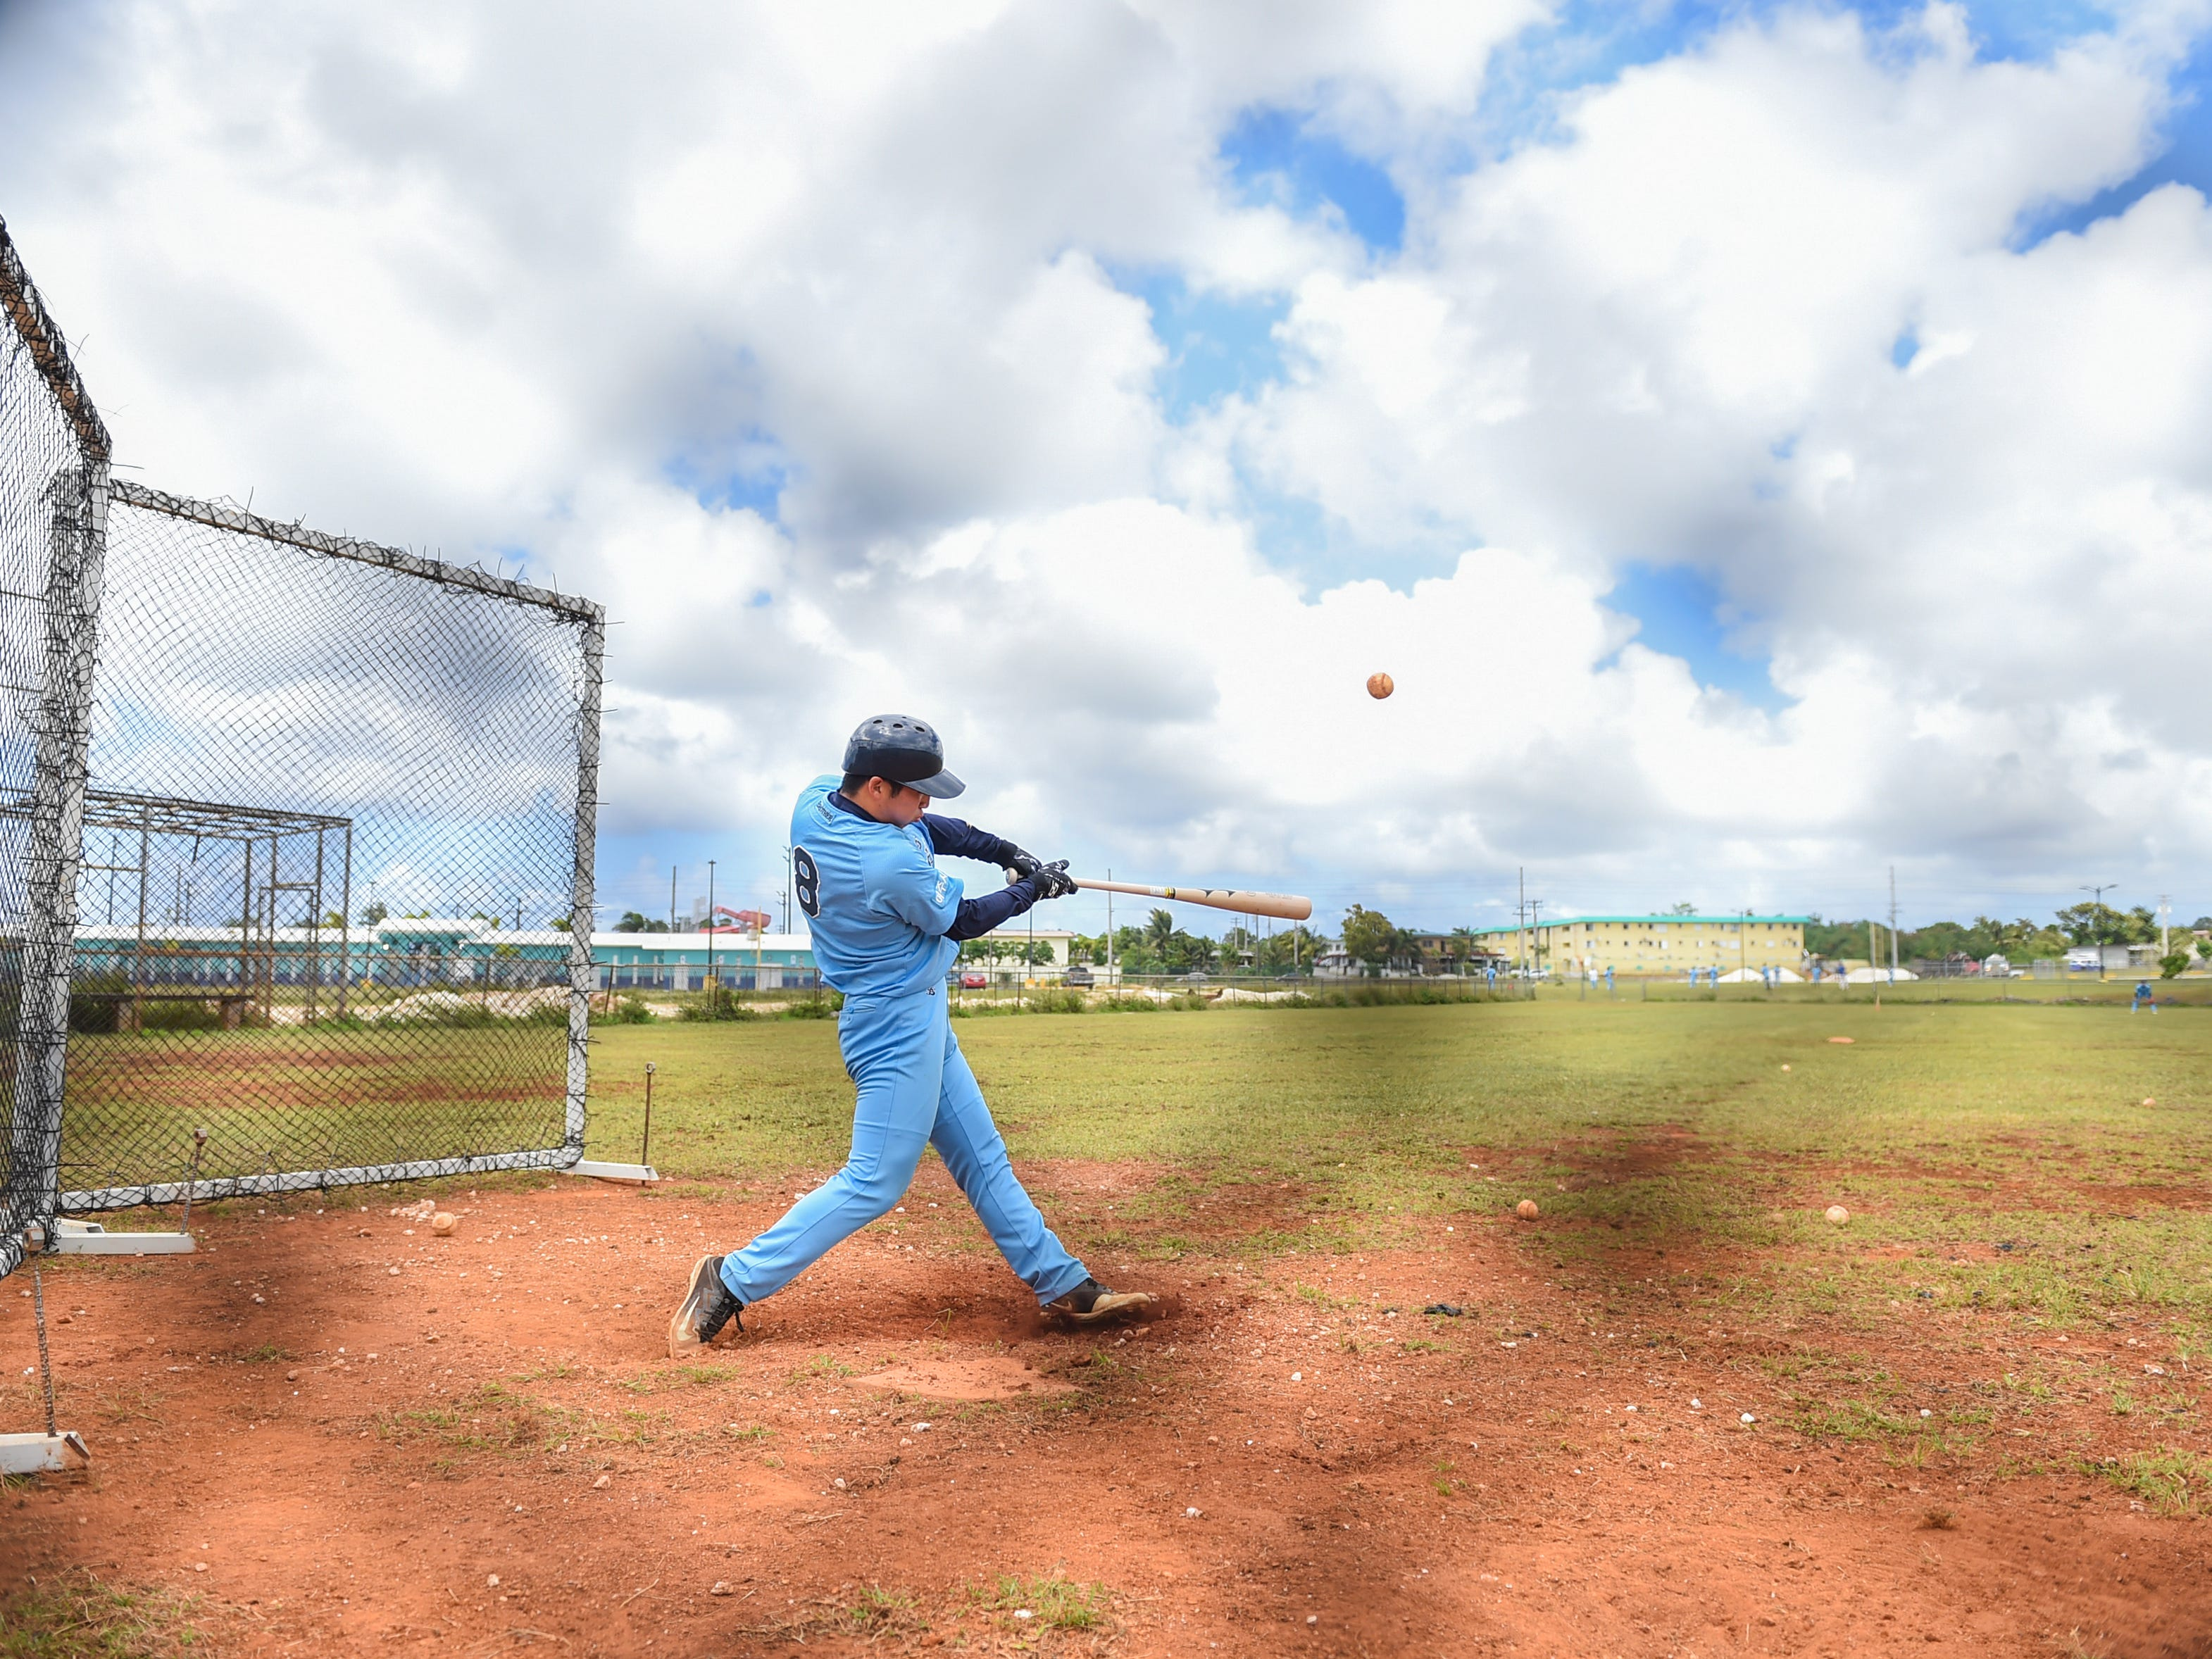 Yeoju University baseball team players get some batting practice in during their winter training at the Guam Sports Complex in Dededo, Feb. 11, 2019.